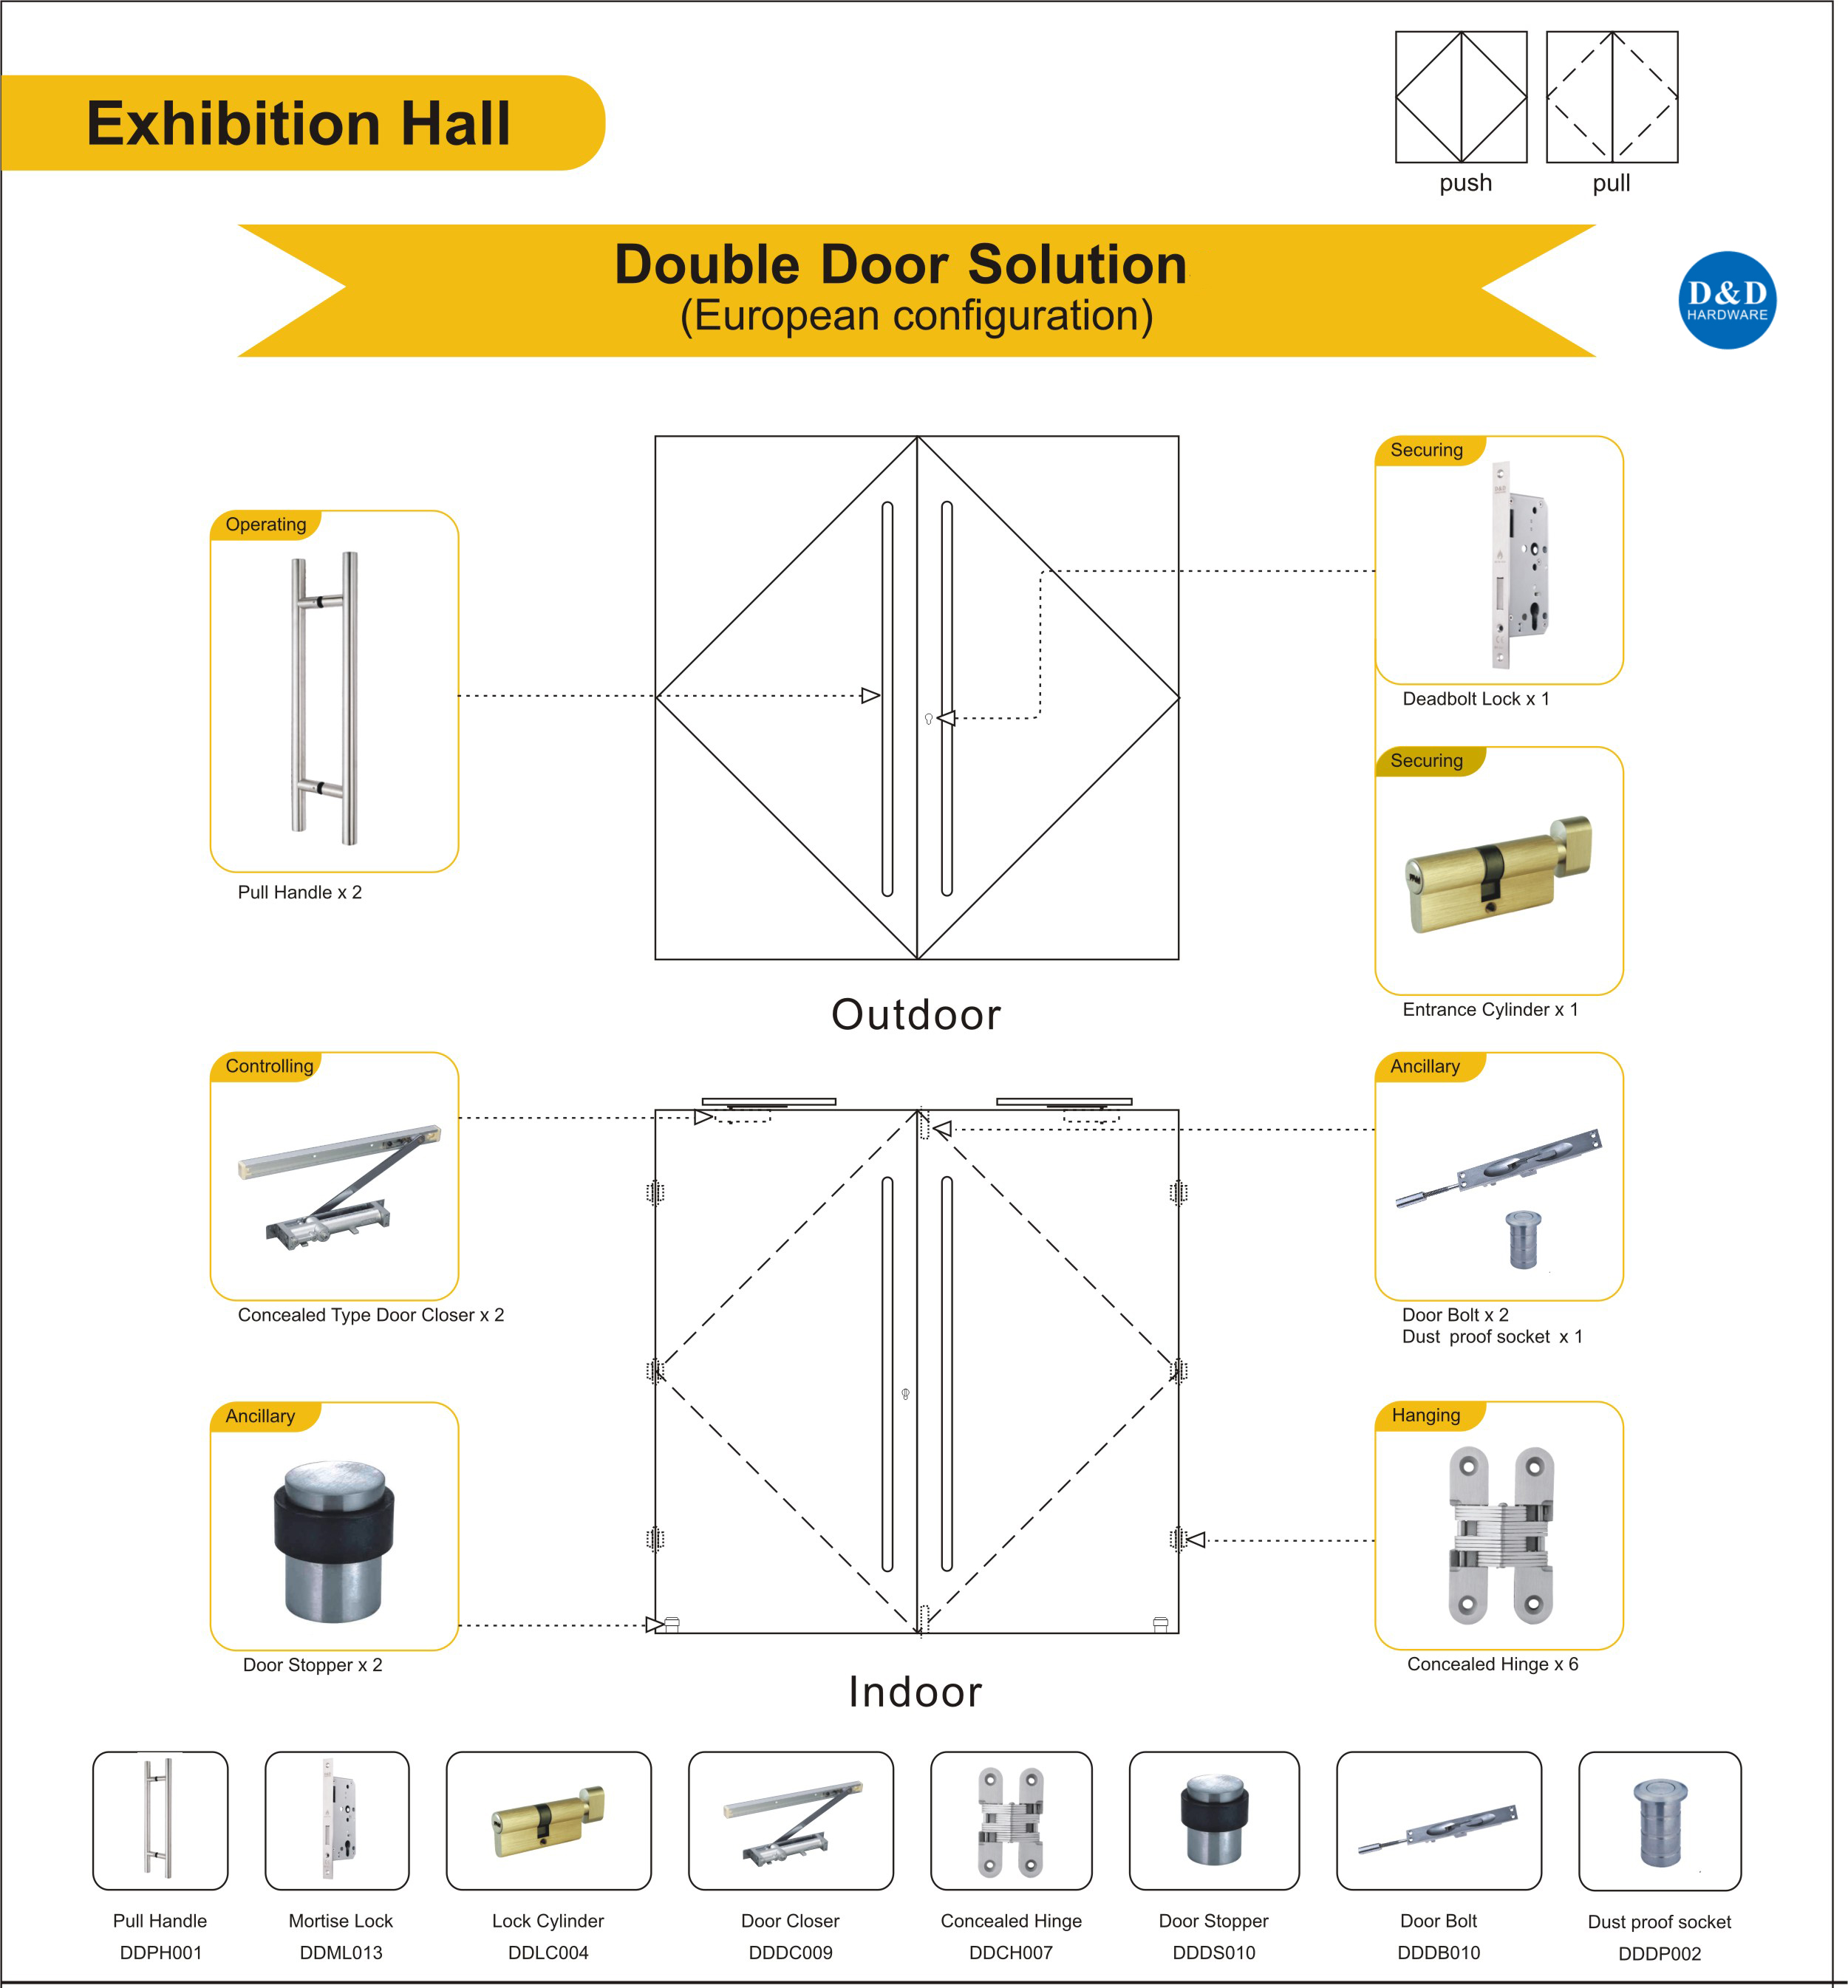 Door Hardware Solution for Exhibition Hall Double Door